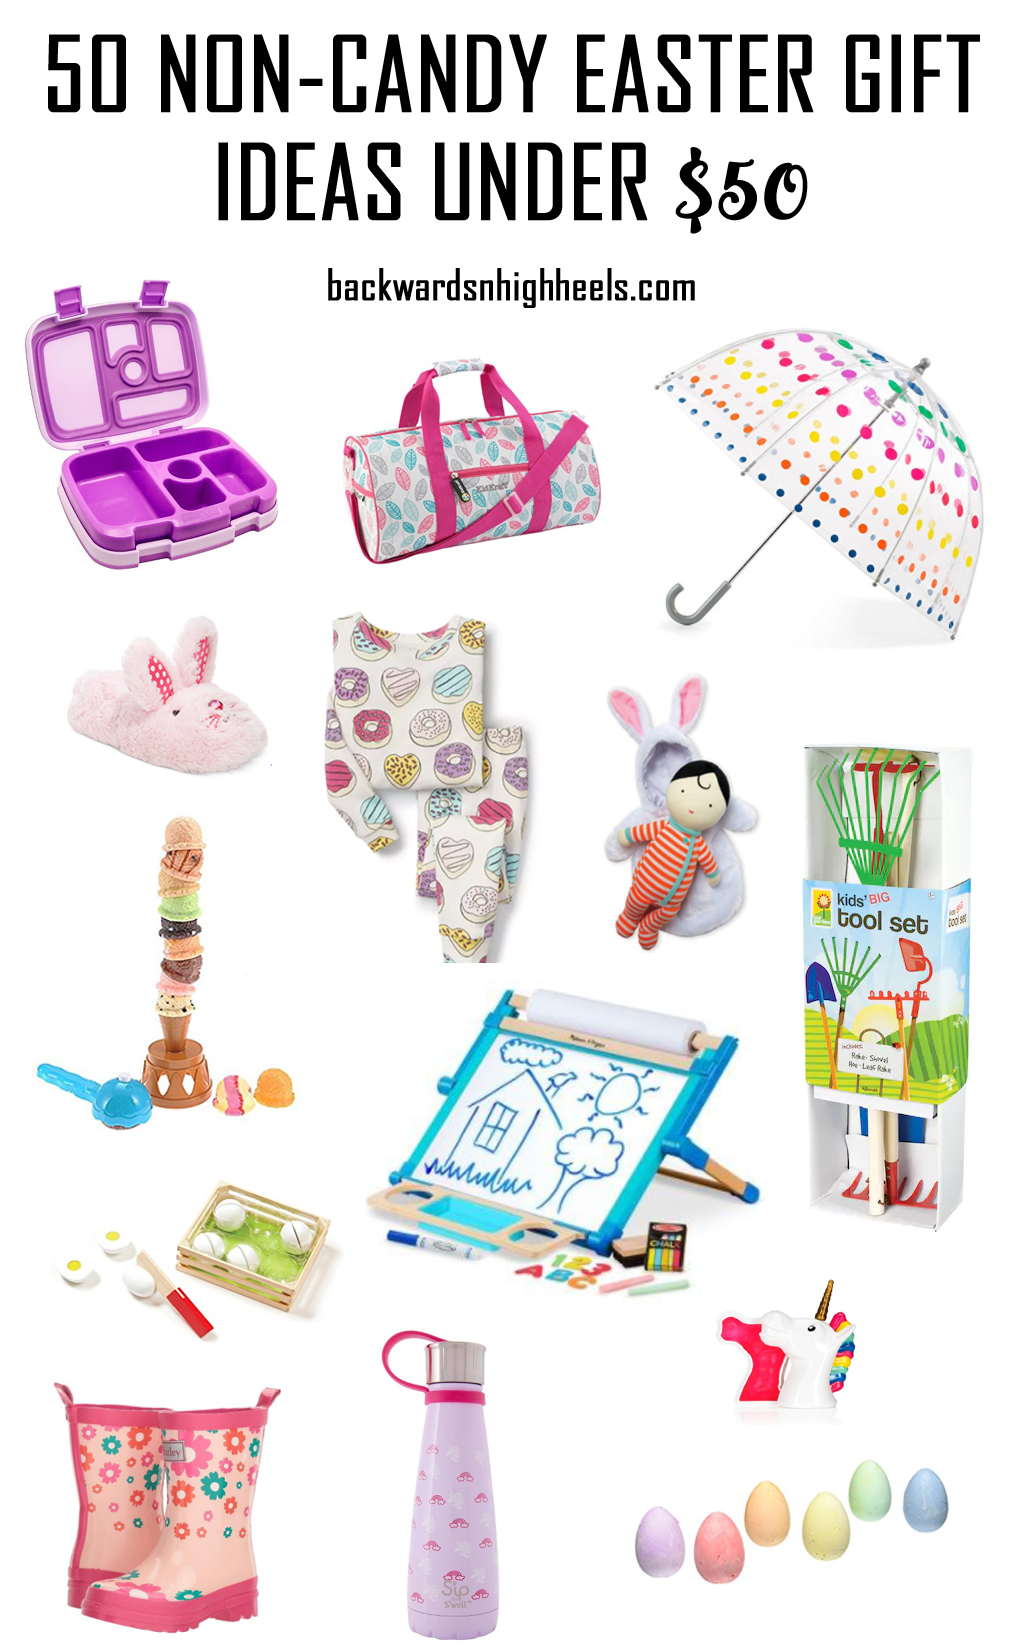 50 non candy easter gift ideas under 50 50non candy easter gift ideas under 50 negle Choice Image